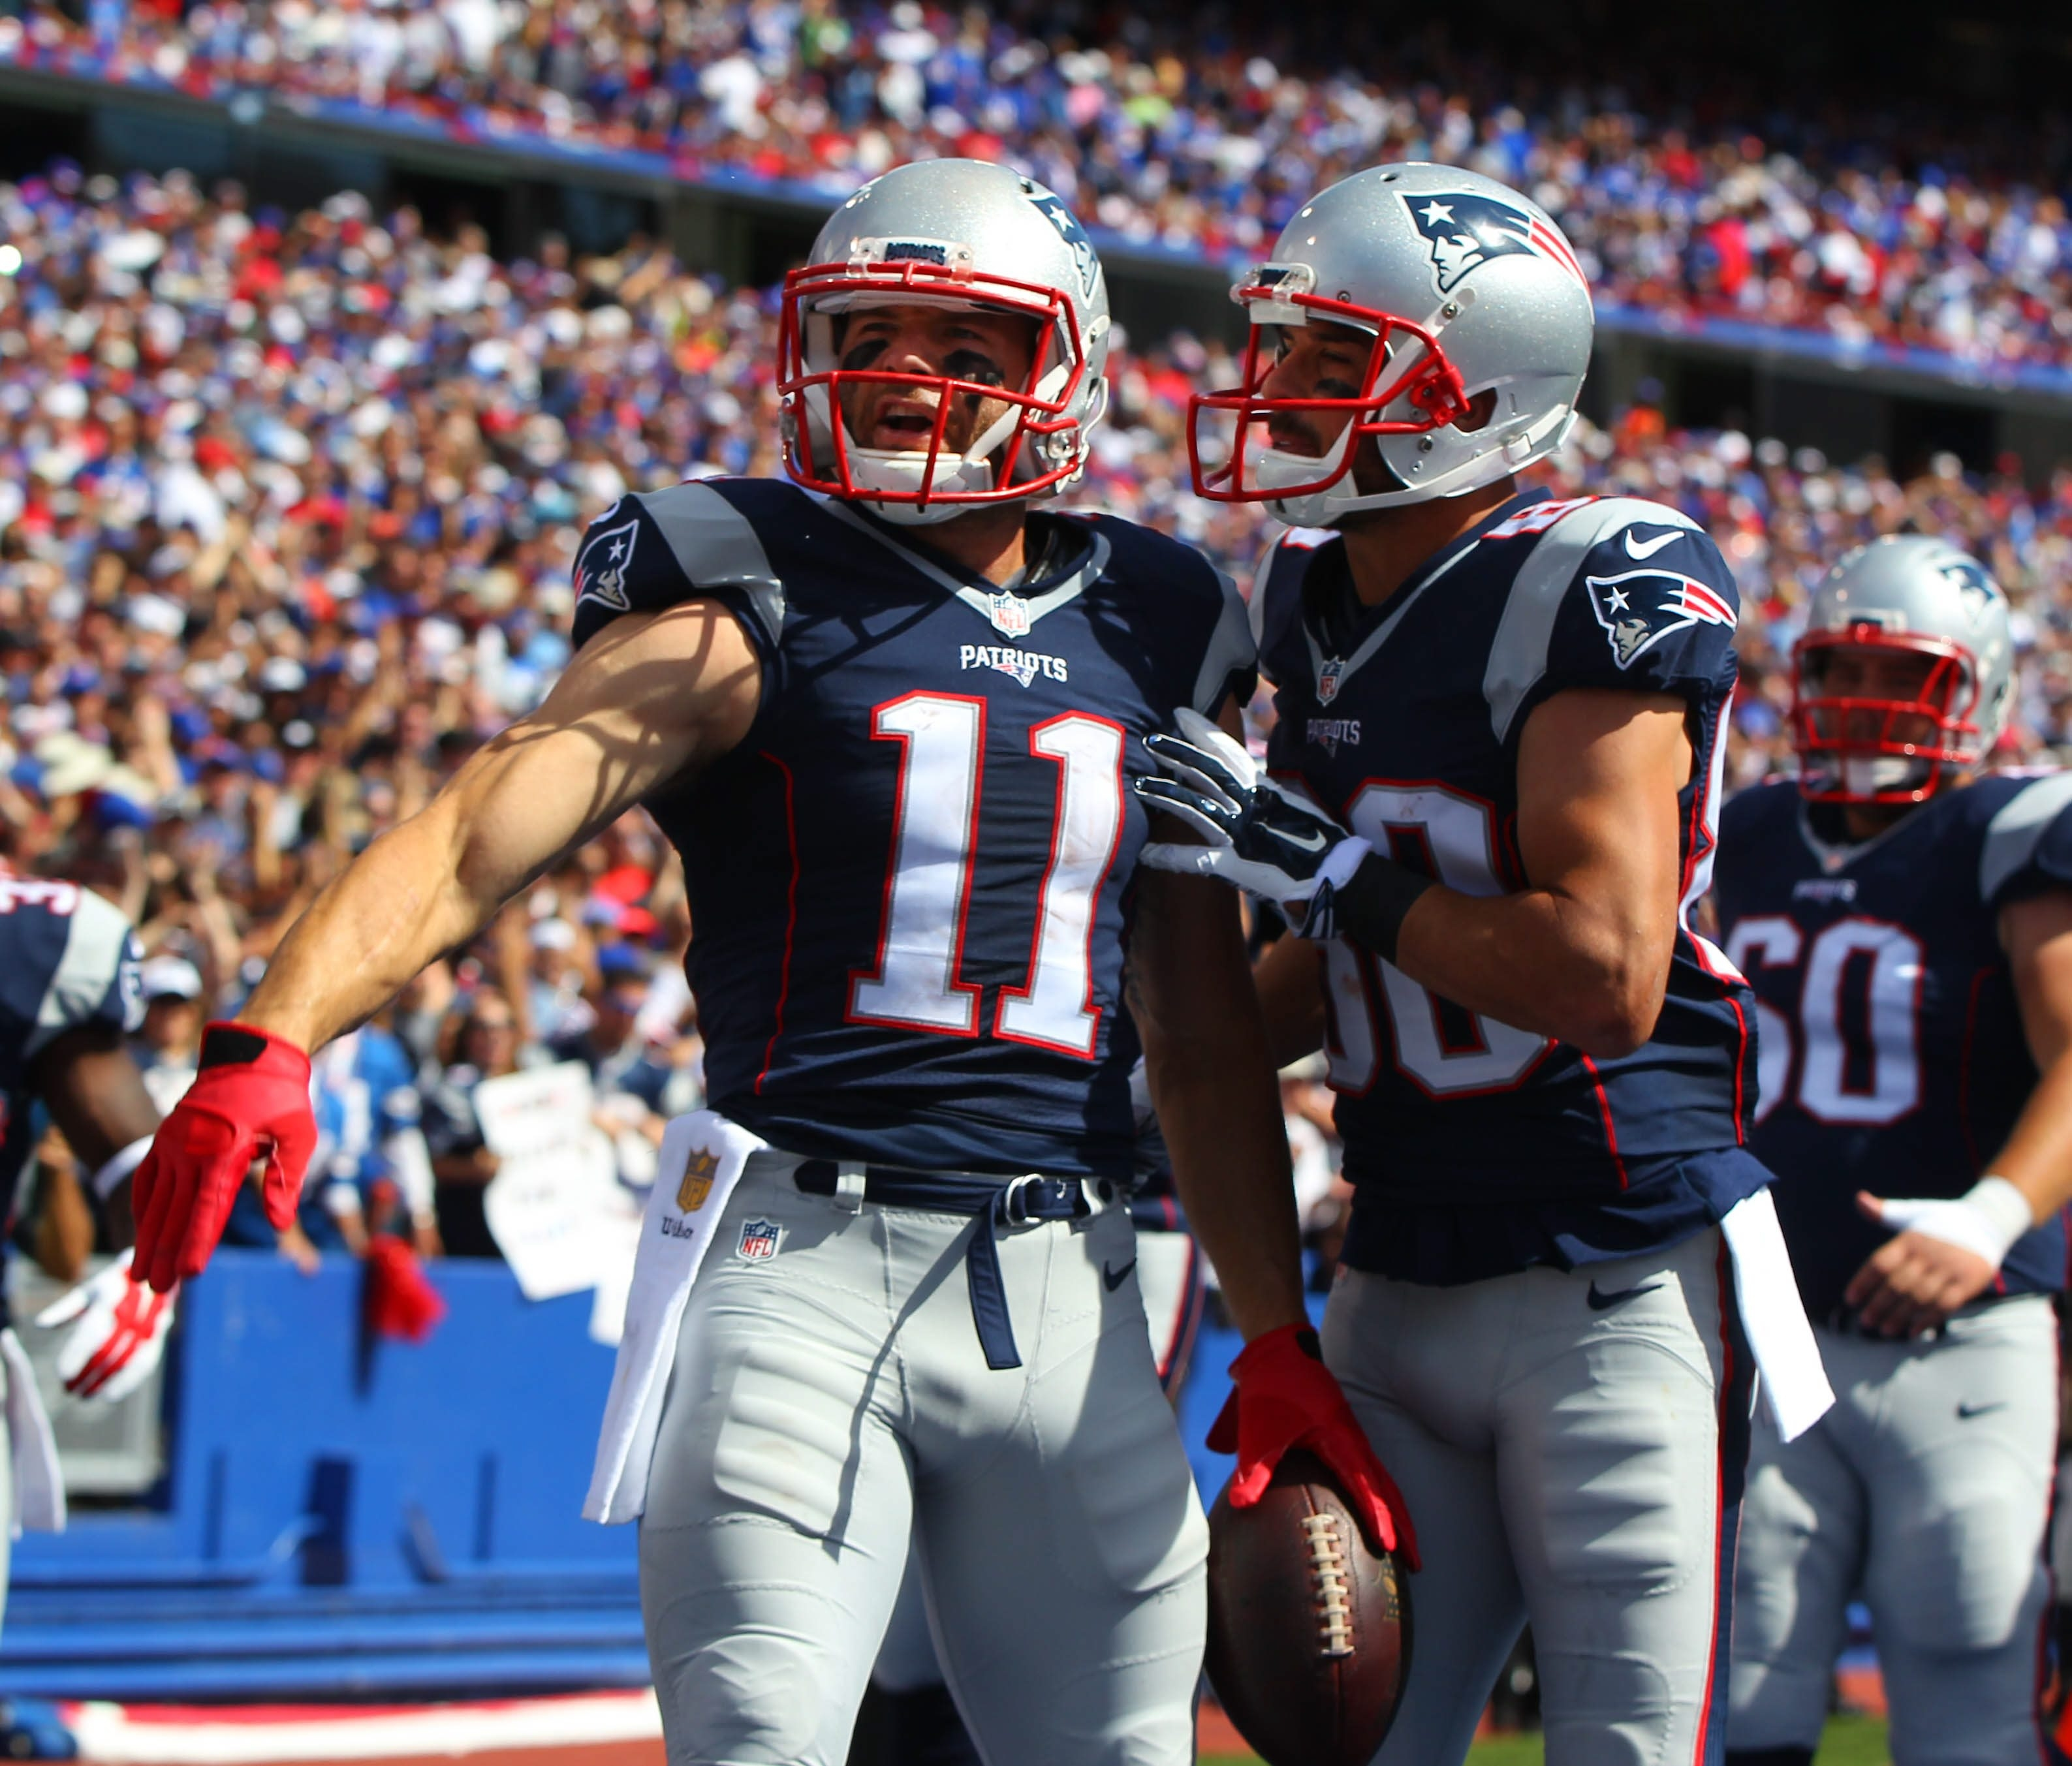 Julian Edelman is expected back in the lineup Saturday when the Patriots meet the Chiefs.